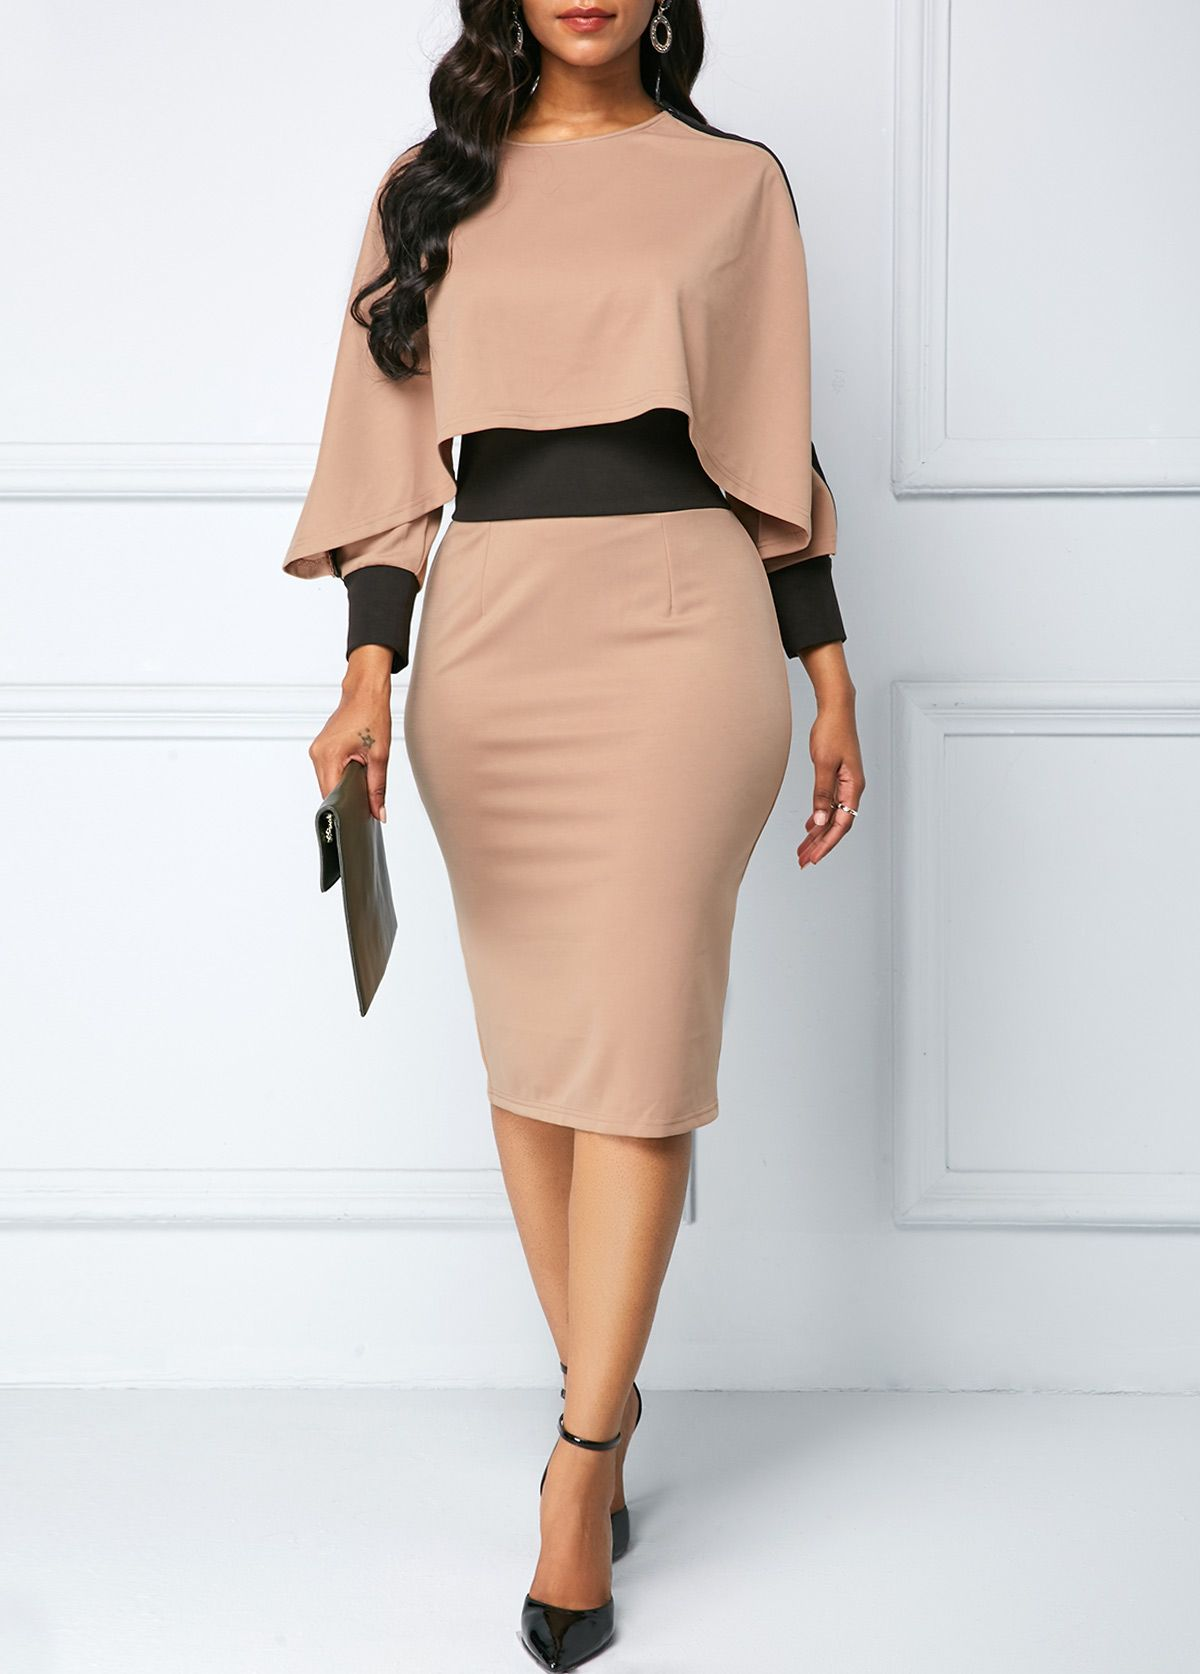 Long Sleeve Back Slit Overlay Front Sheath Dress | modlily.com - USD $27.60